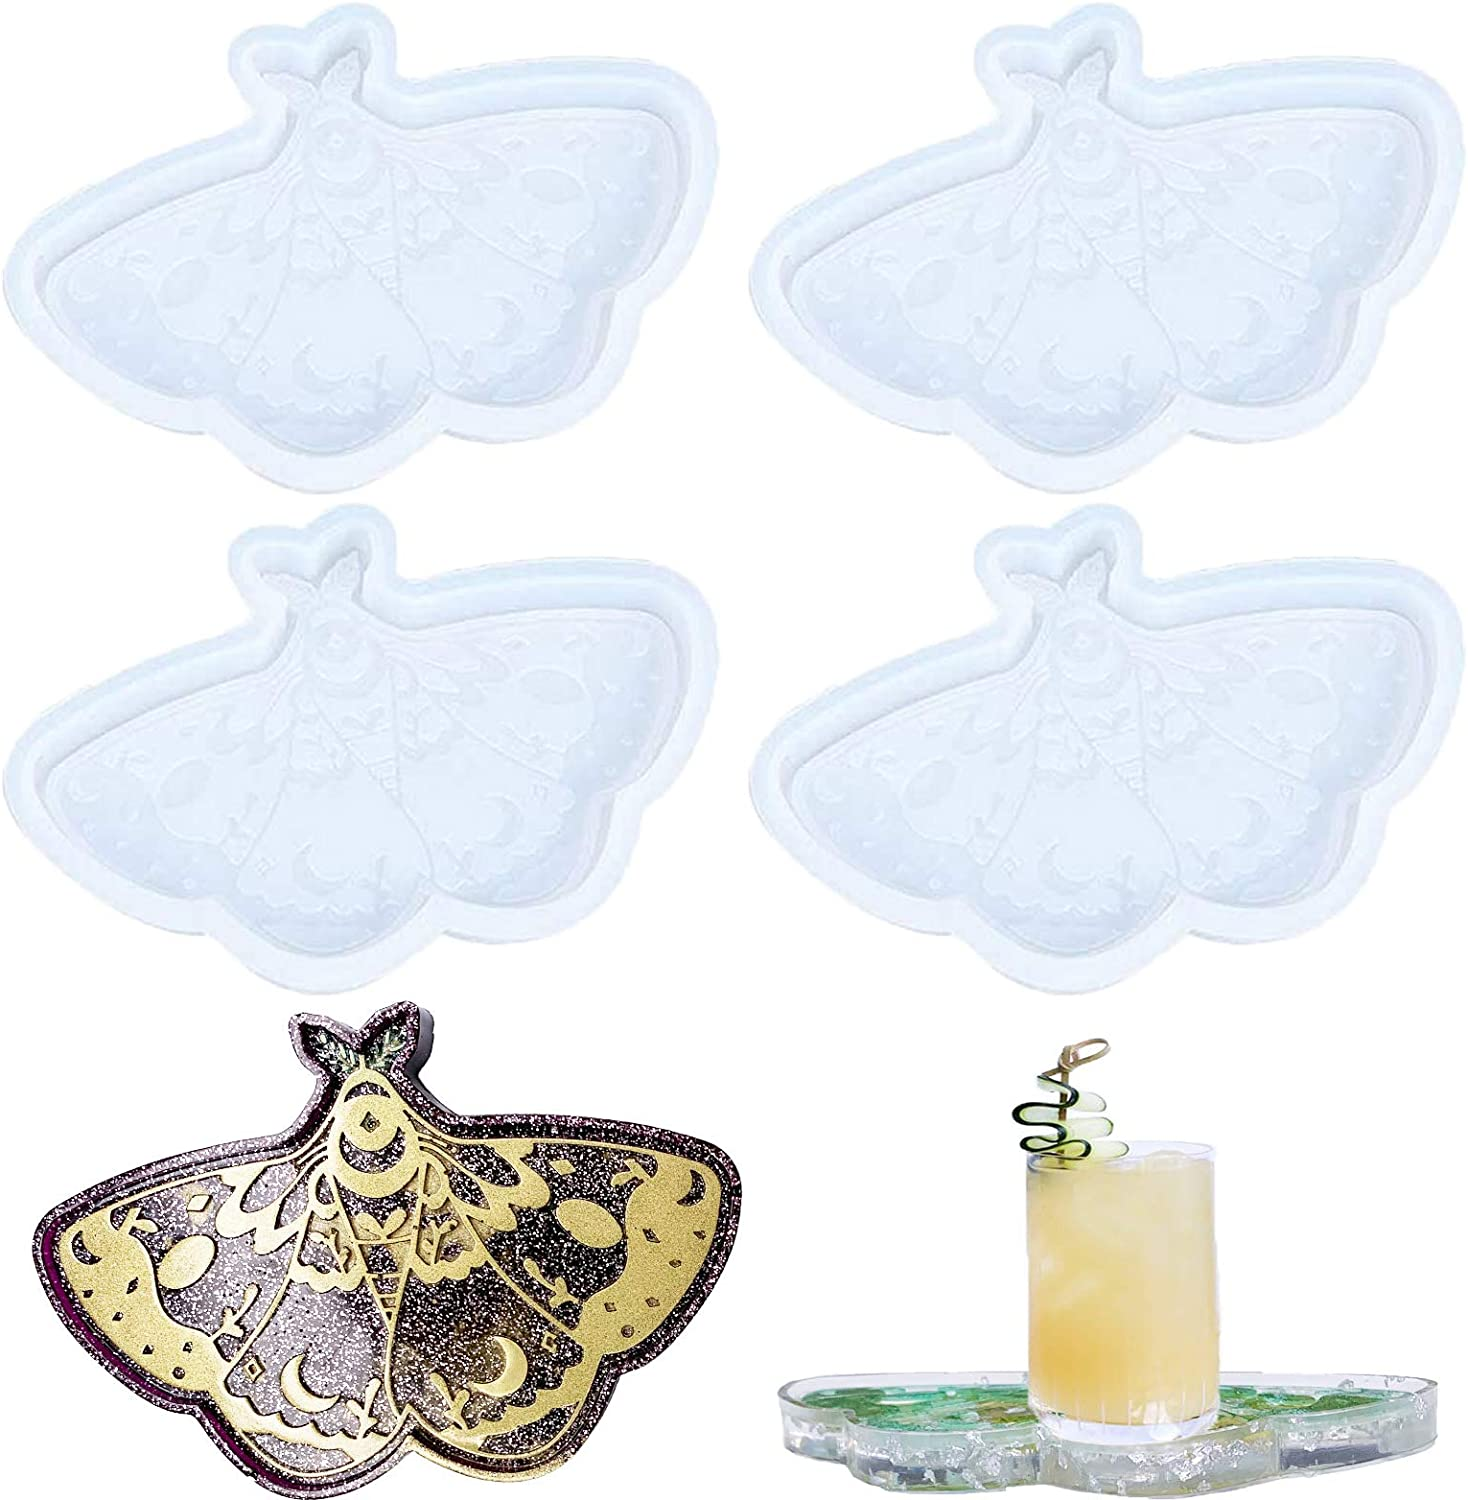 4 Pieces Butterfly Coaster Resin Epo DIY Mat Molds Cup New Directly managed store products world's highest quality popular